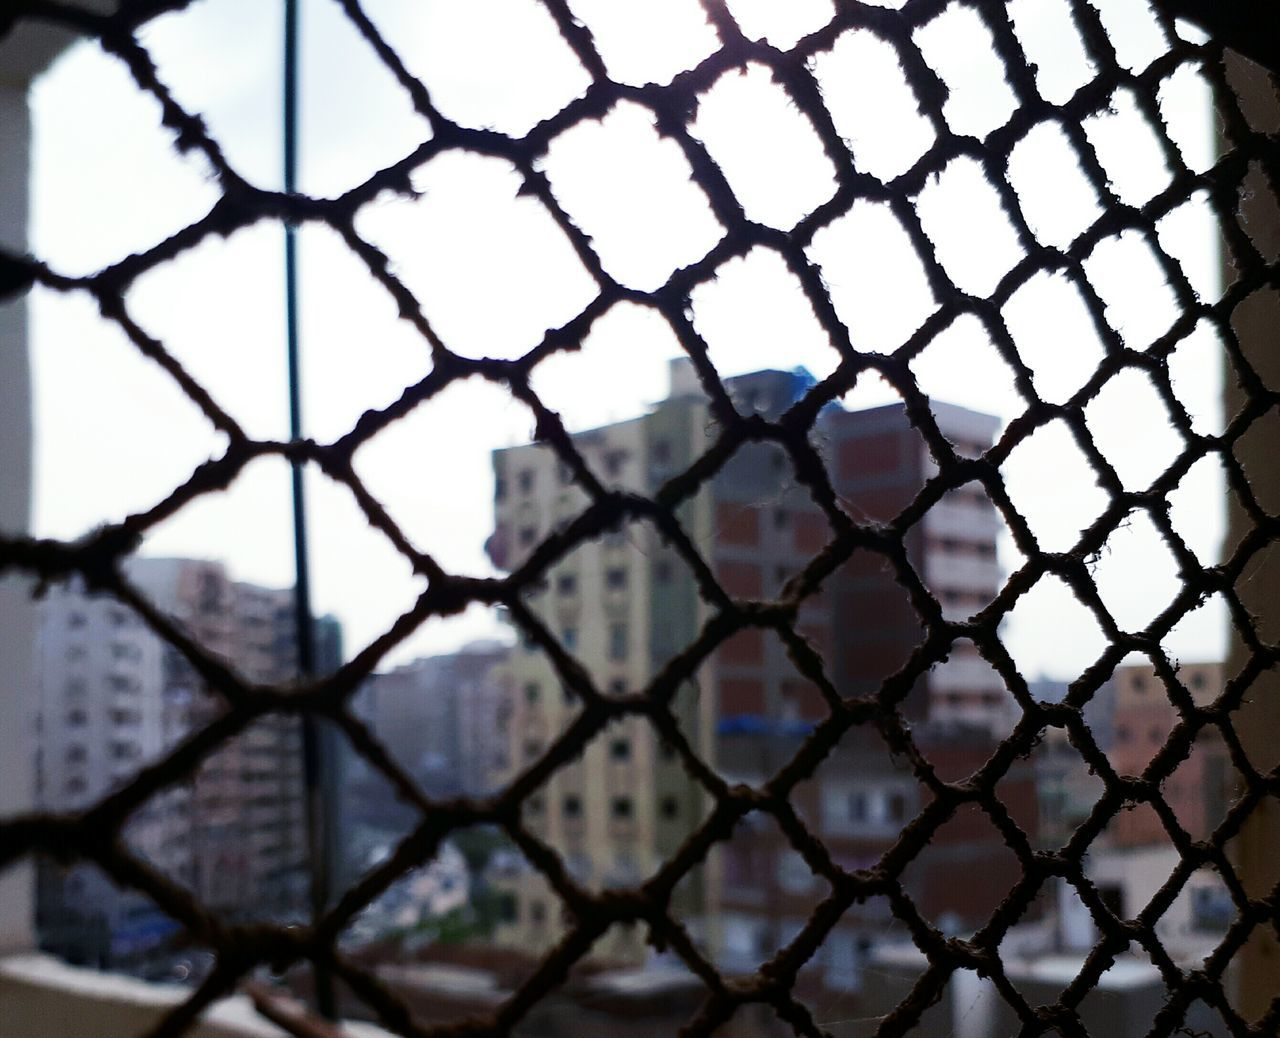 chainlink fence, protection, safety, security, full frame, pattern, metal, backgrounds, close-up, day, no people, outdoors, sky, architecture